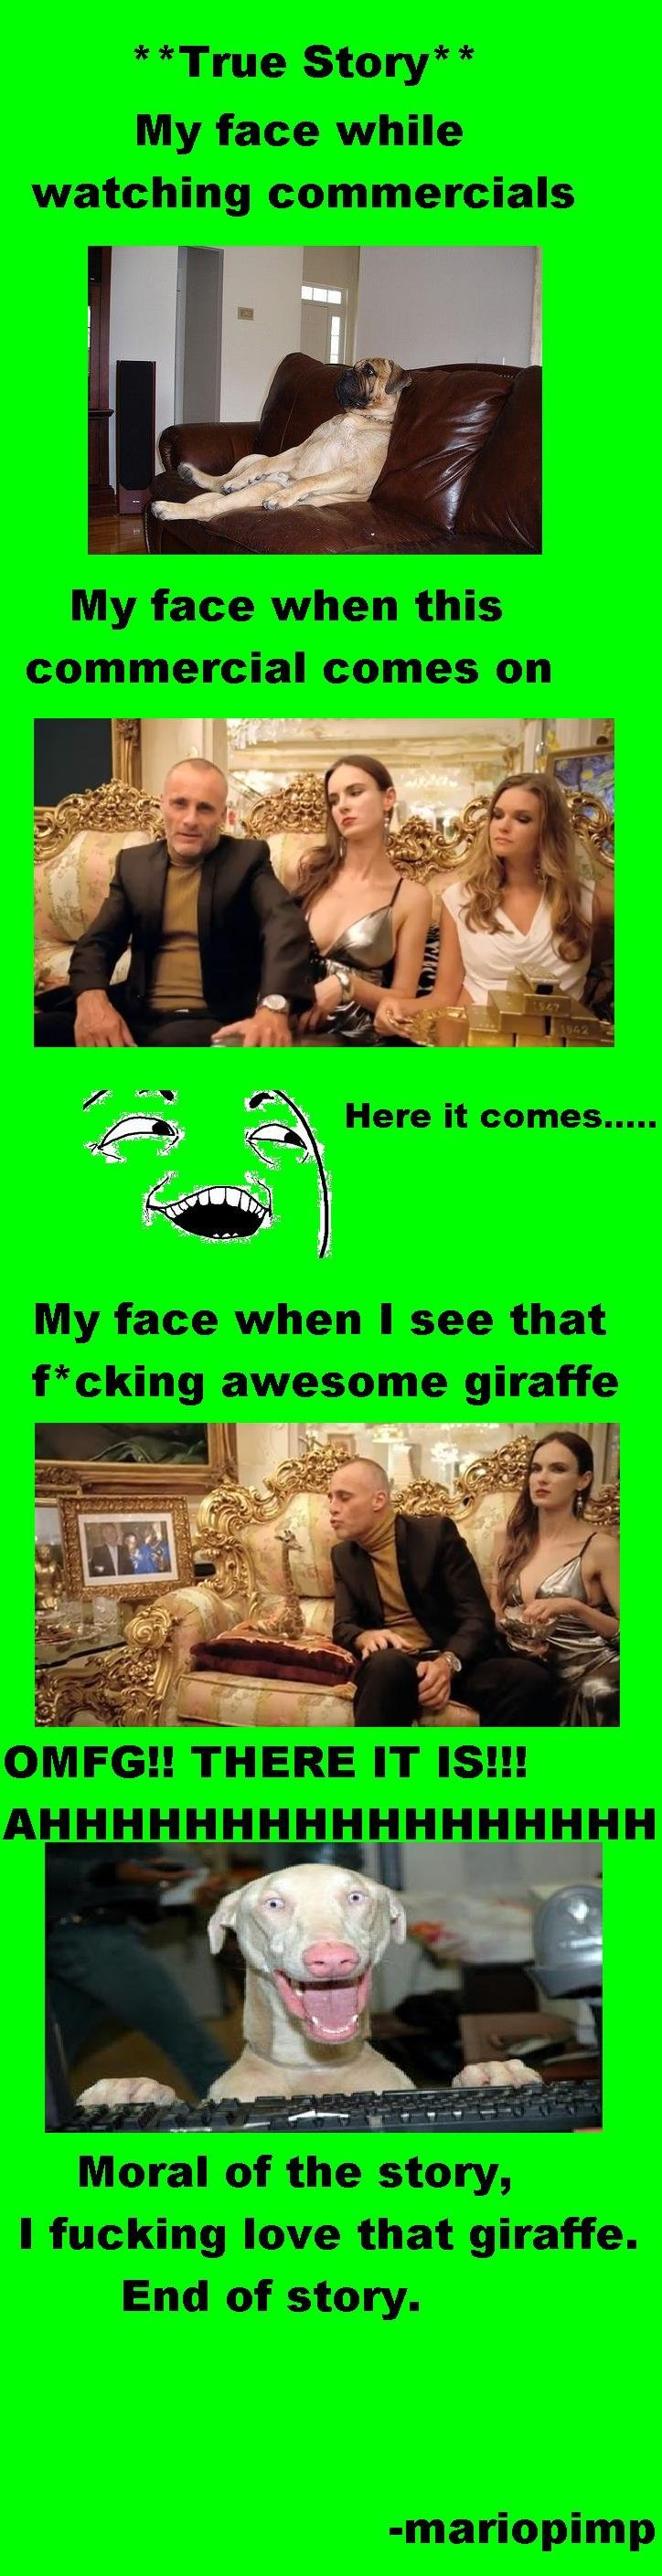 A Minute in the Life of Me. . True Story My face while watching commercials My face when this commercial comes on My face when I see that f cking awesome giraff